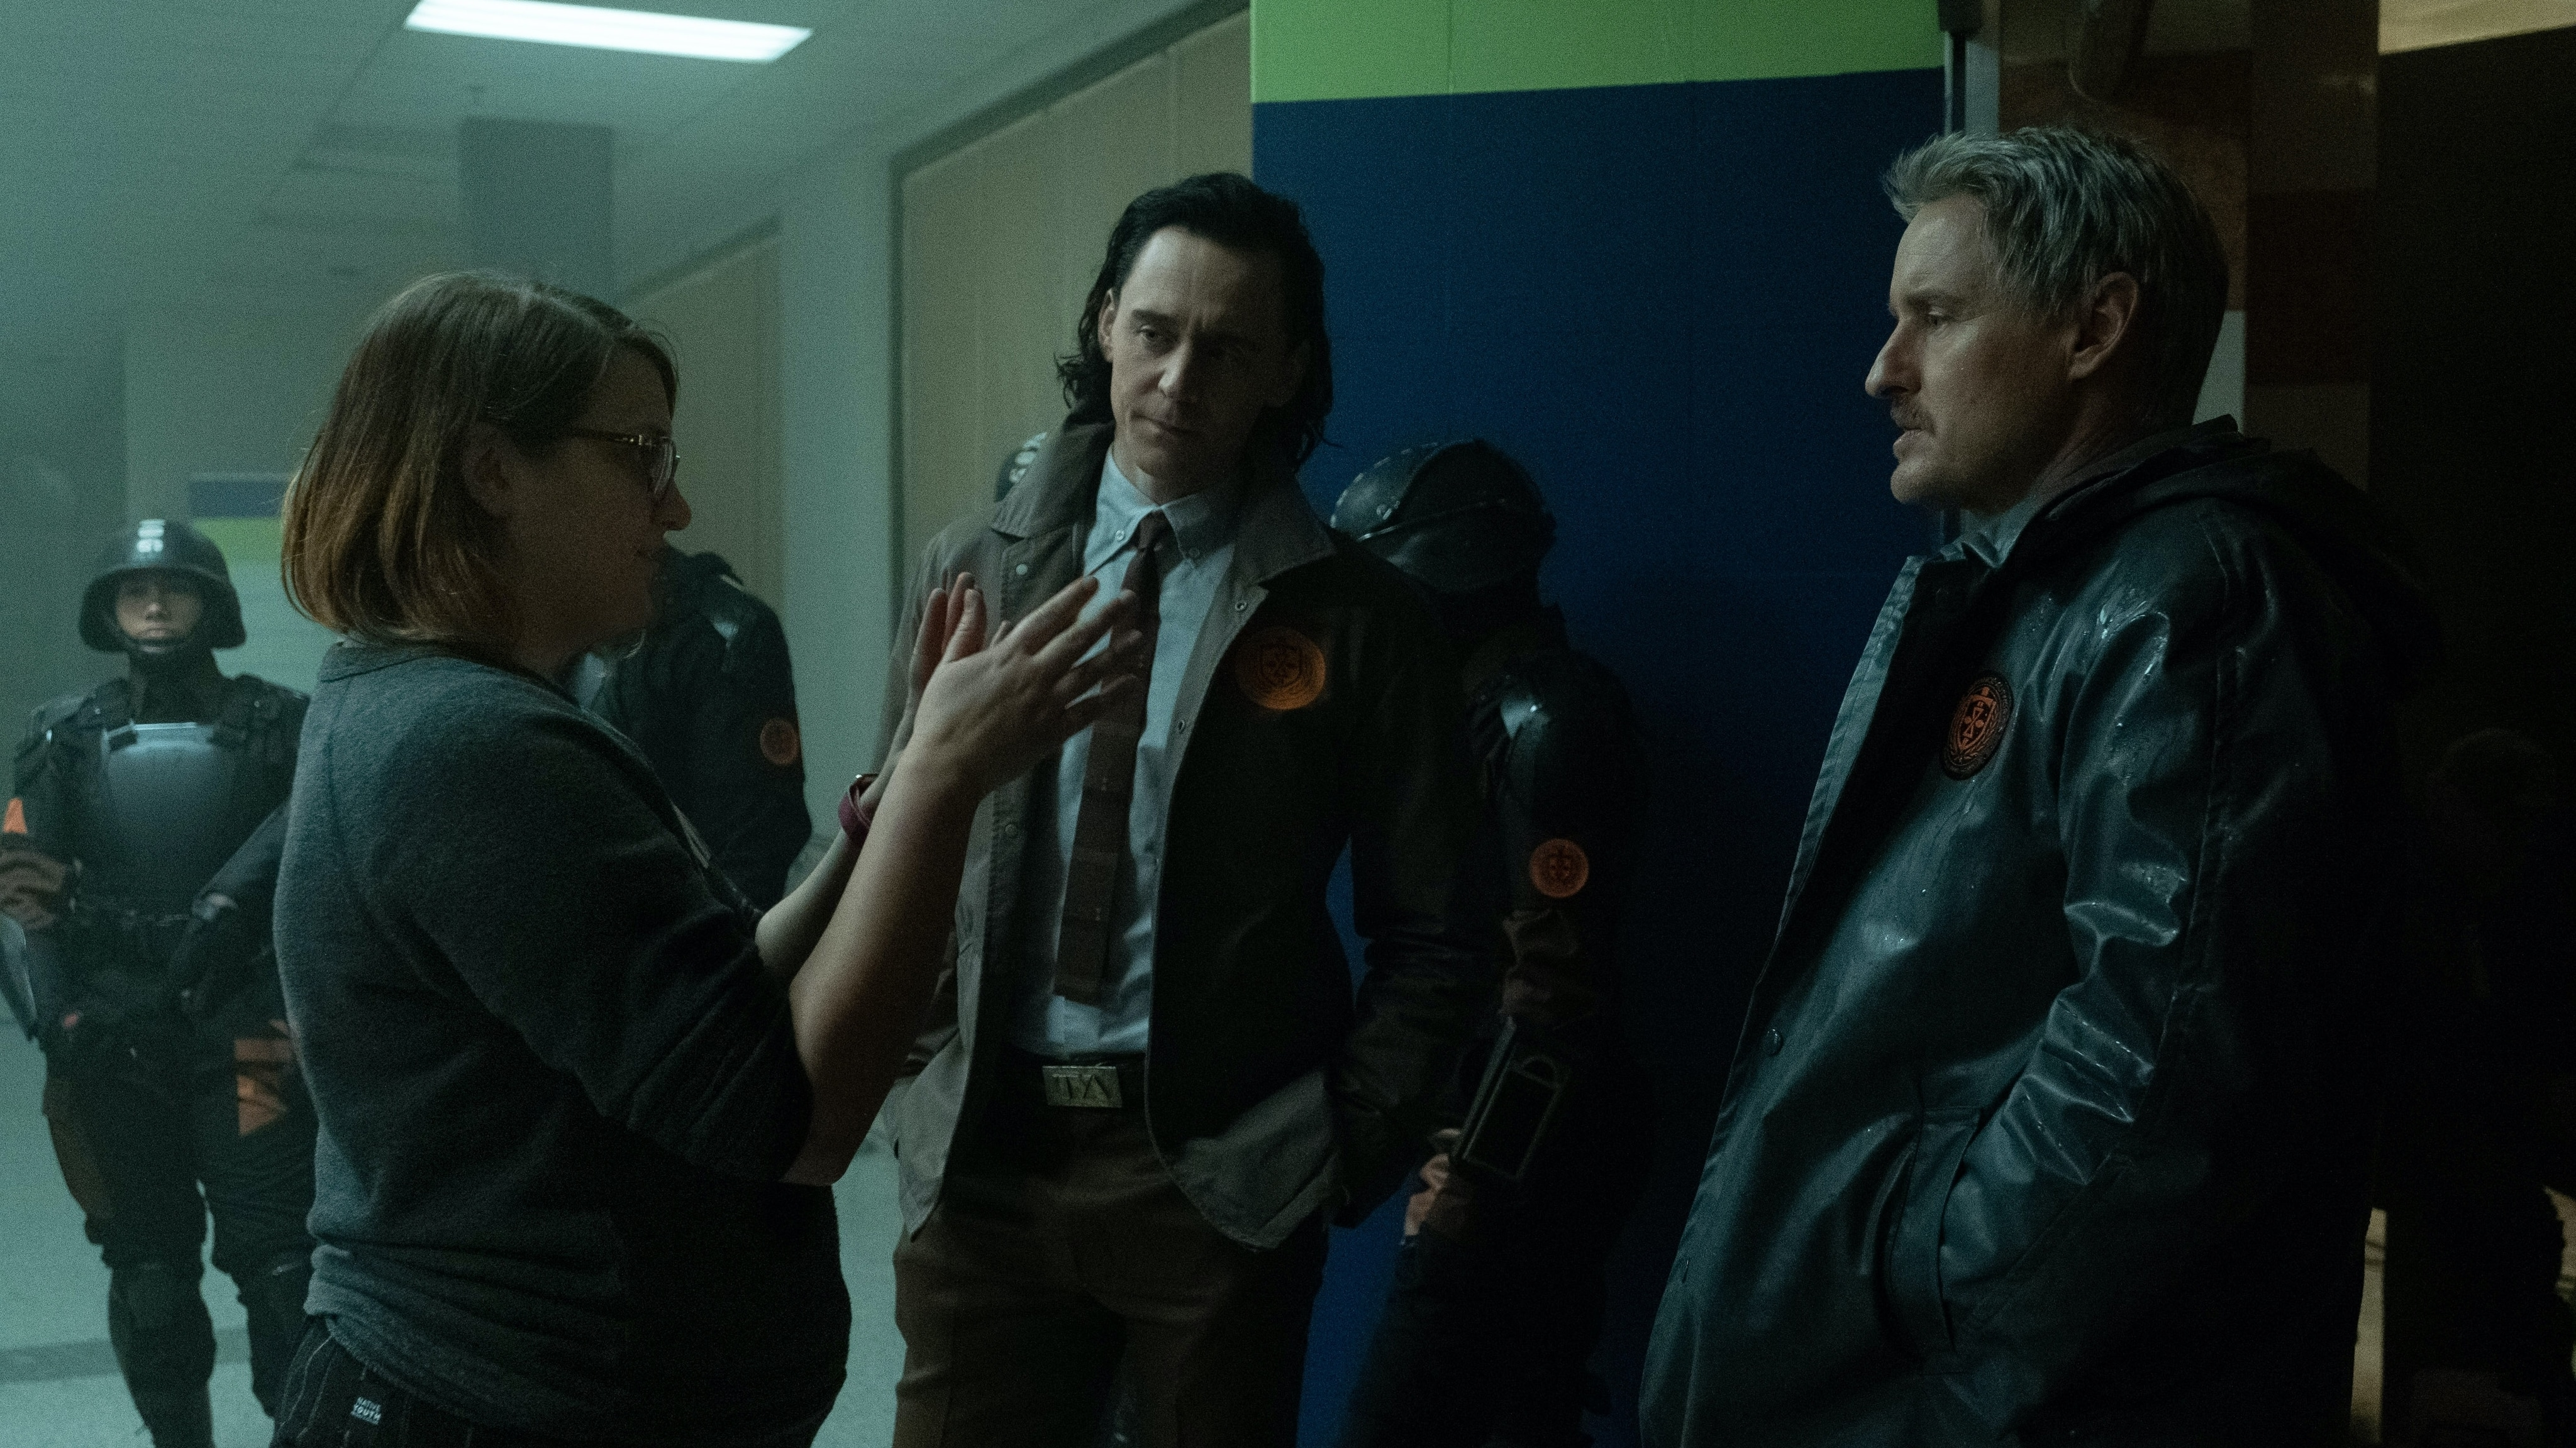 (L-R): Director Kate Herron, TomHiddleston and Owen Wilson on the set of Marvel Studios' LOKI, exclusively on Disney+. Photo by Chuck Zlotnick. ©Marvel Studios 2021. All Rights Reserved.